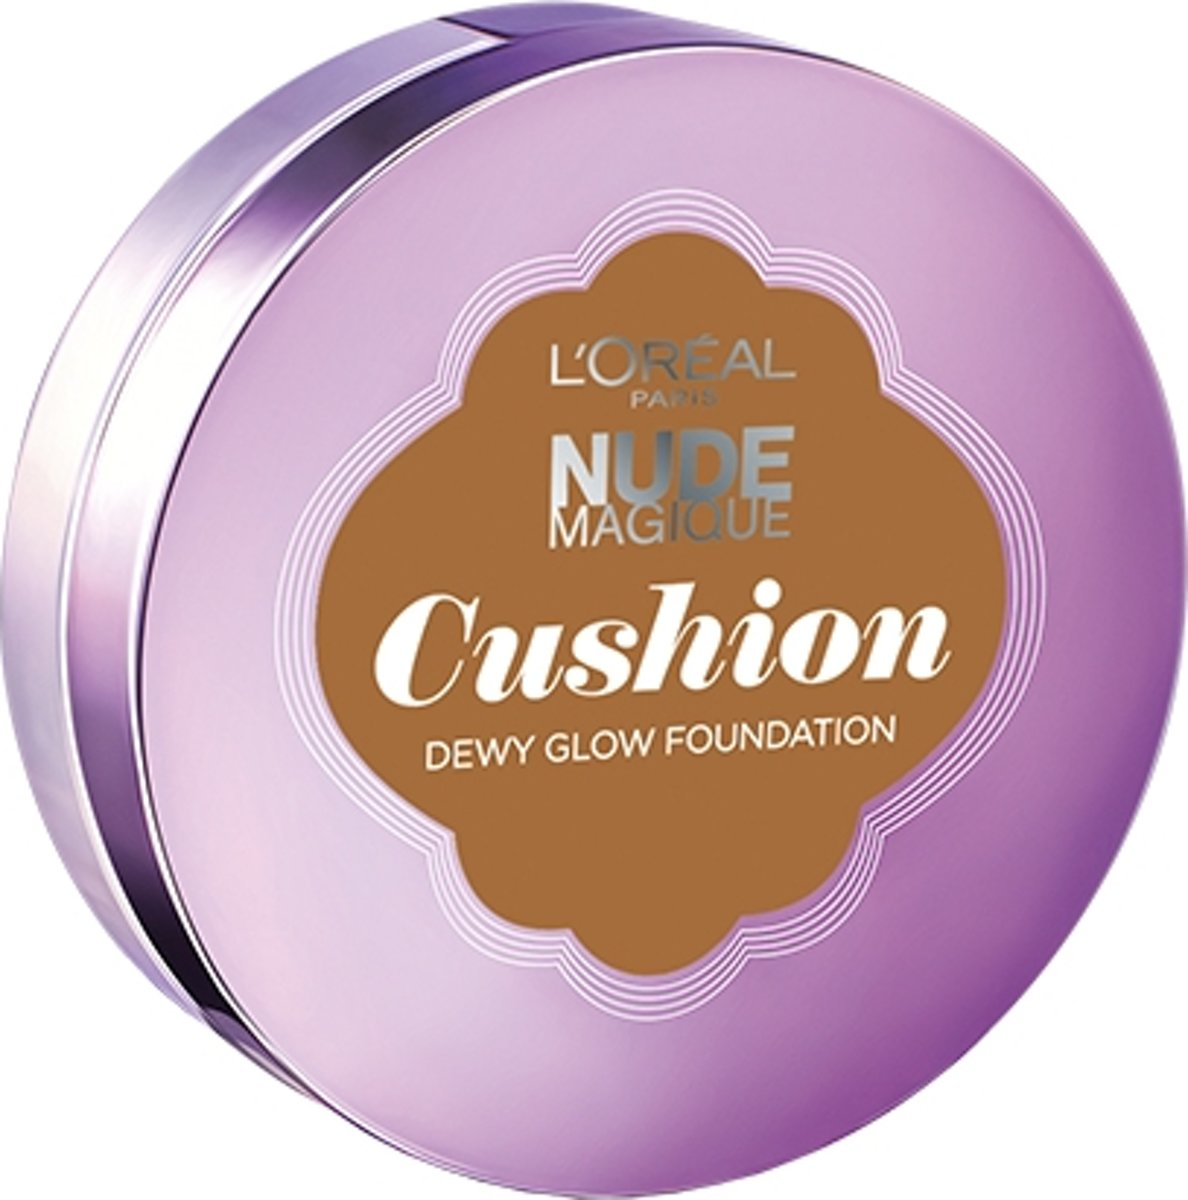 L'Oréal Paris Nude Magique Cushion - 11 Golden - Foundation